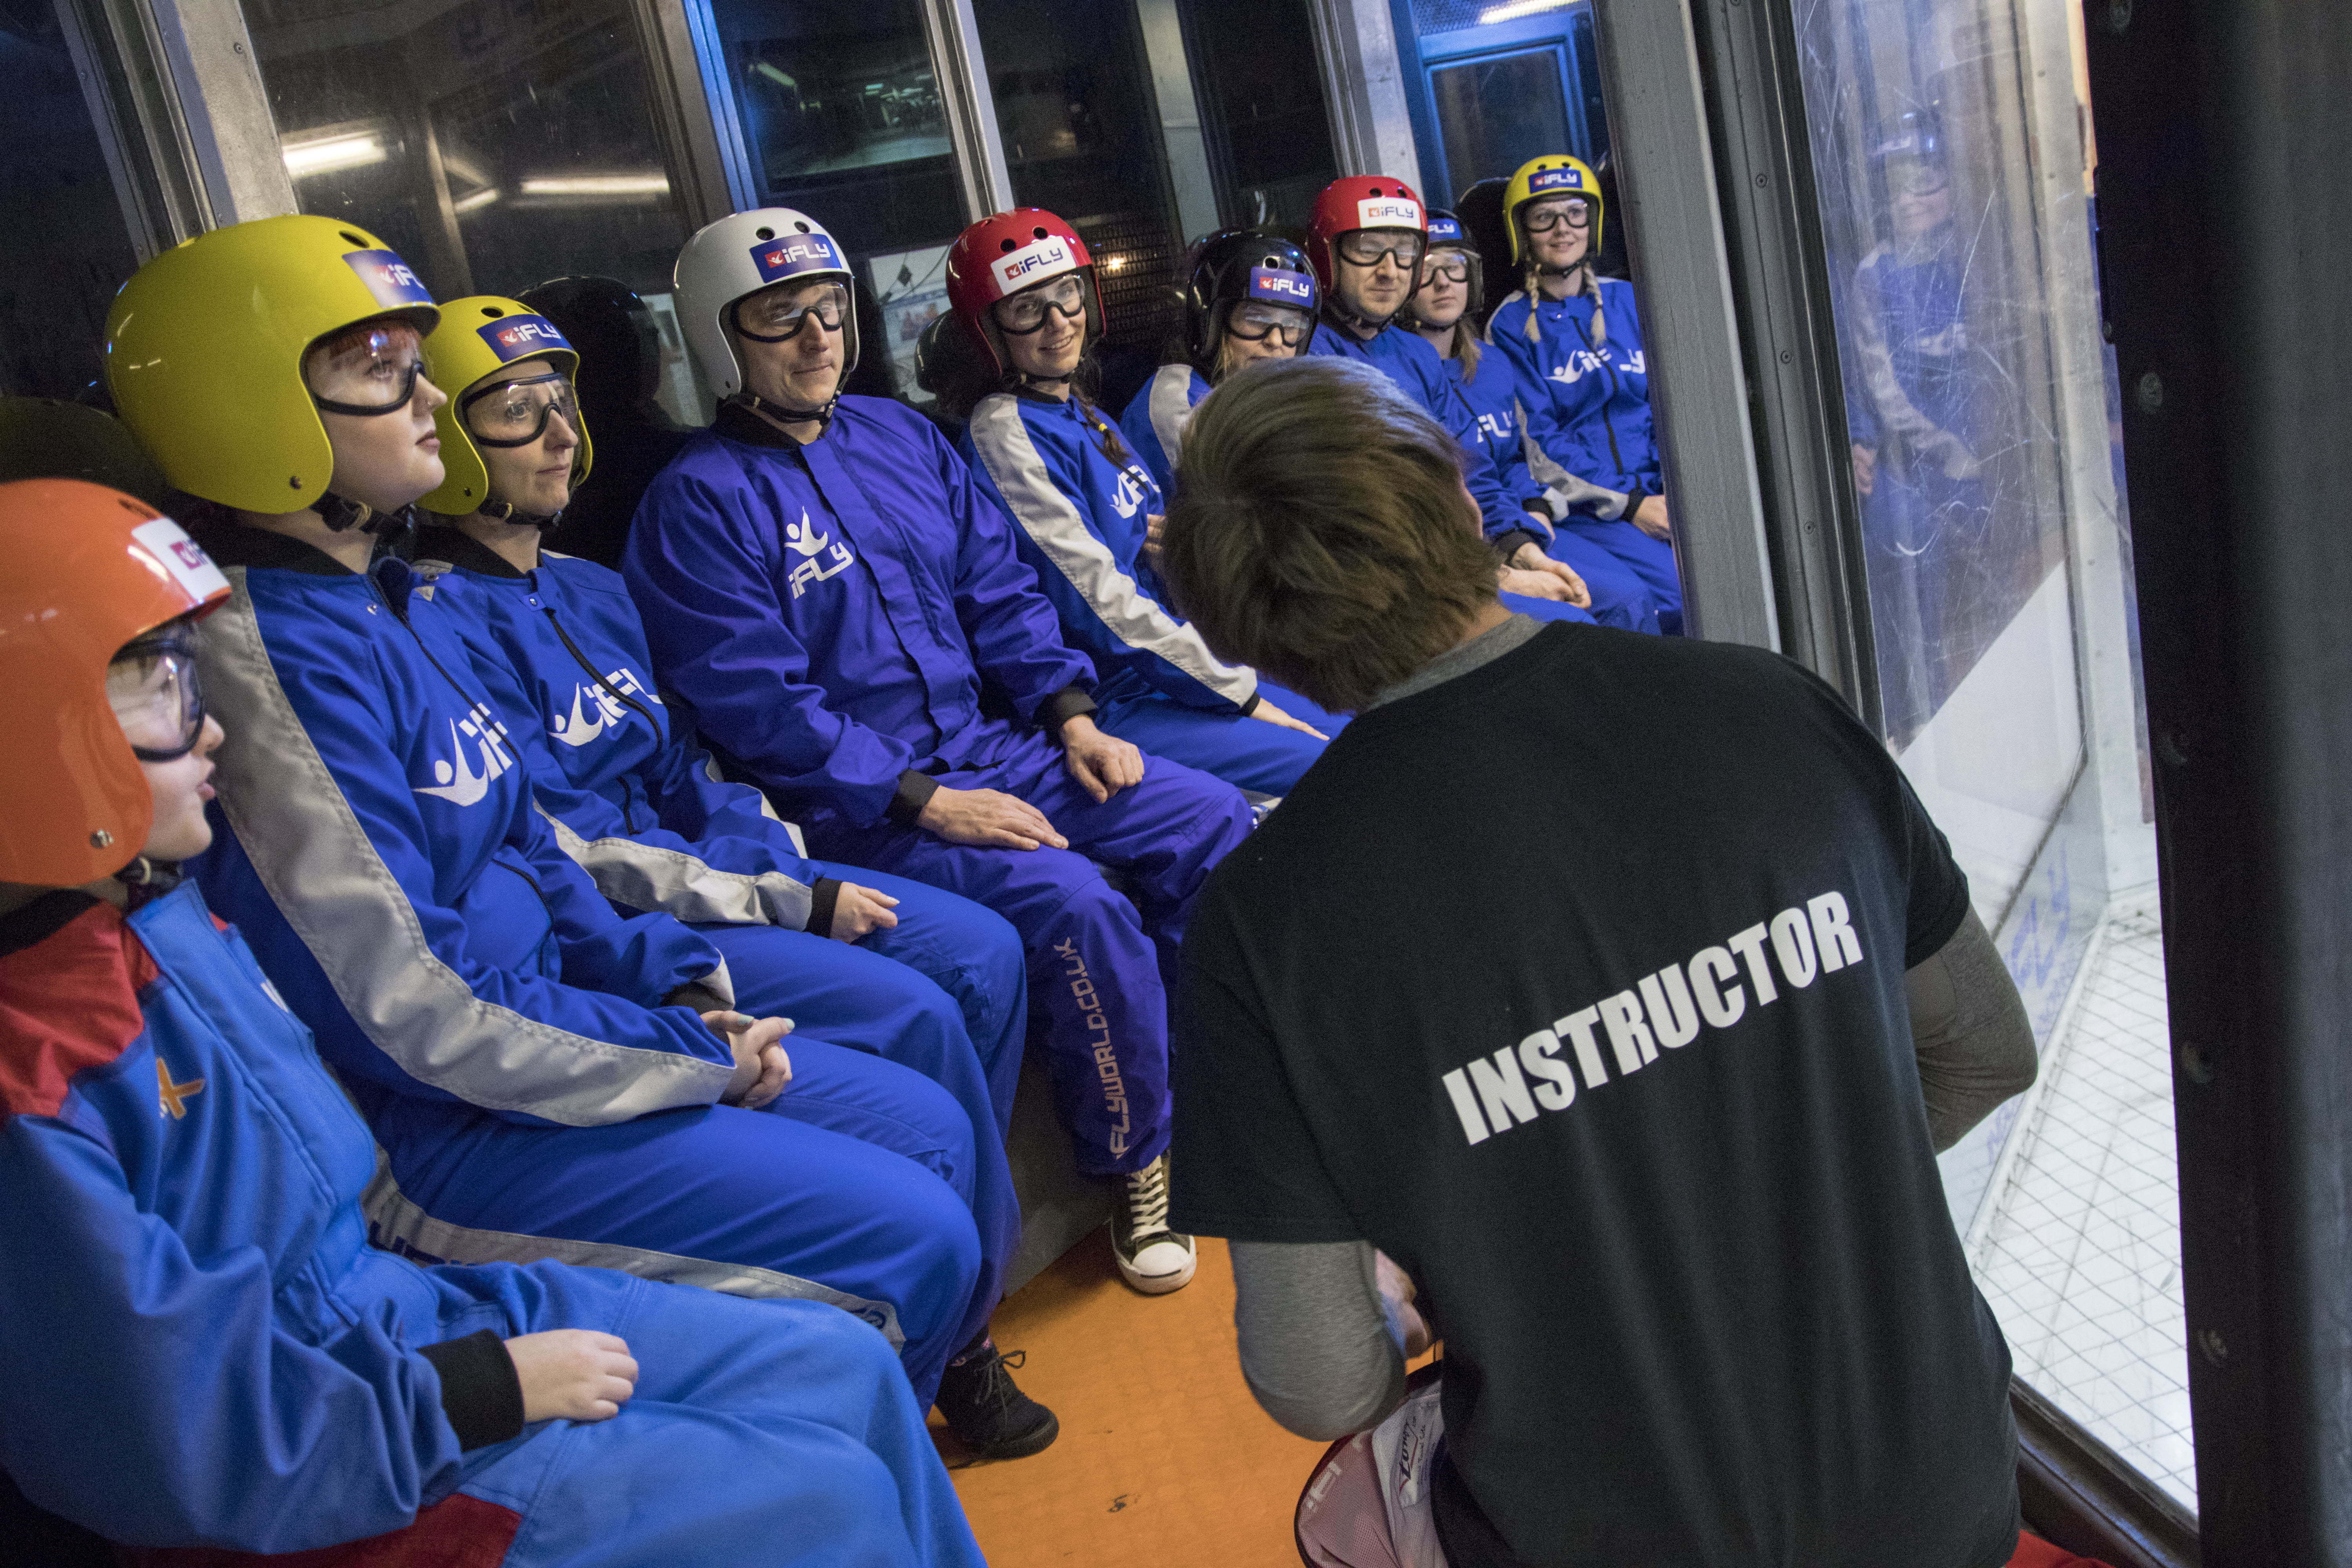 A final briefing outside the wind tunnel before we start Indoor Skydiving